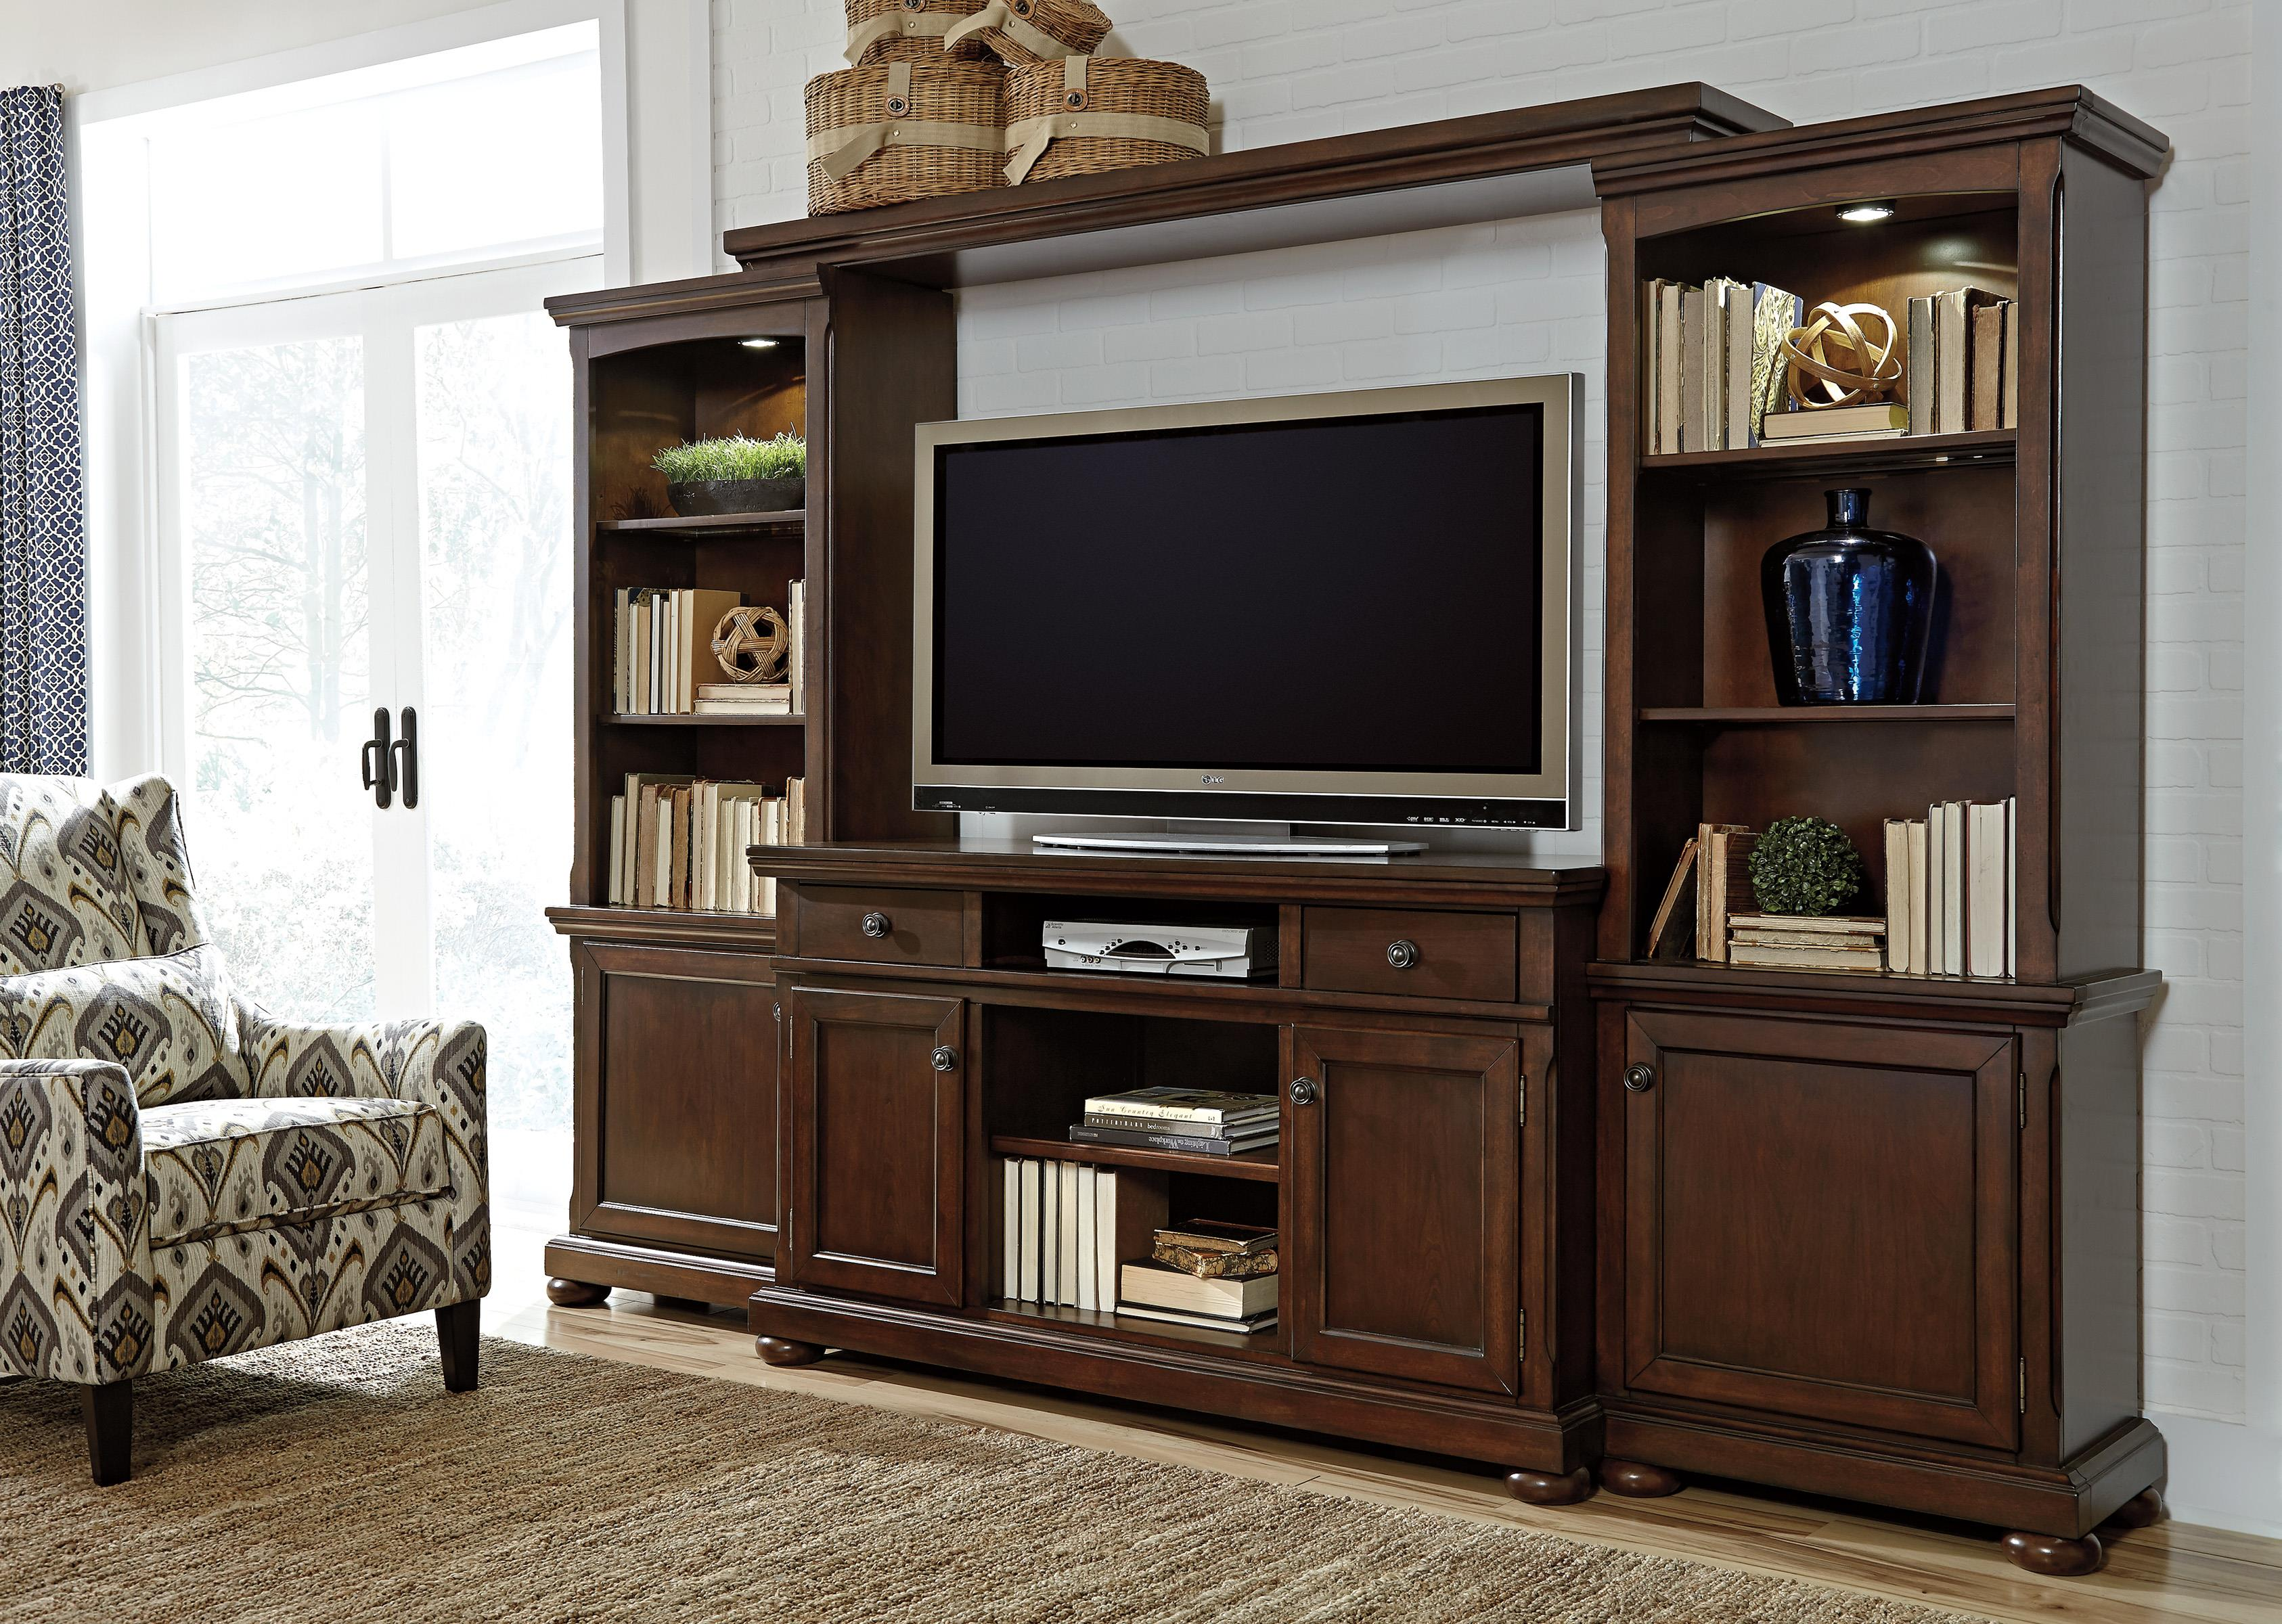 Porter Entertainment Wall Unit w TV Stand Bridge and Piers